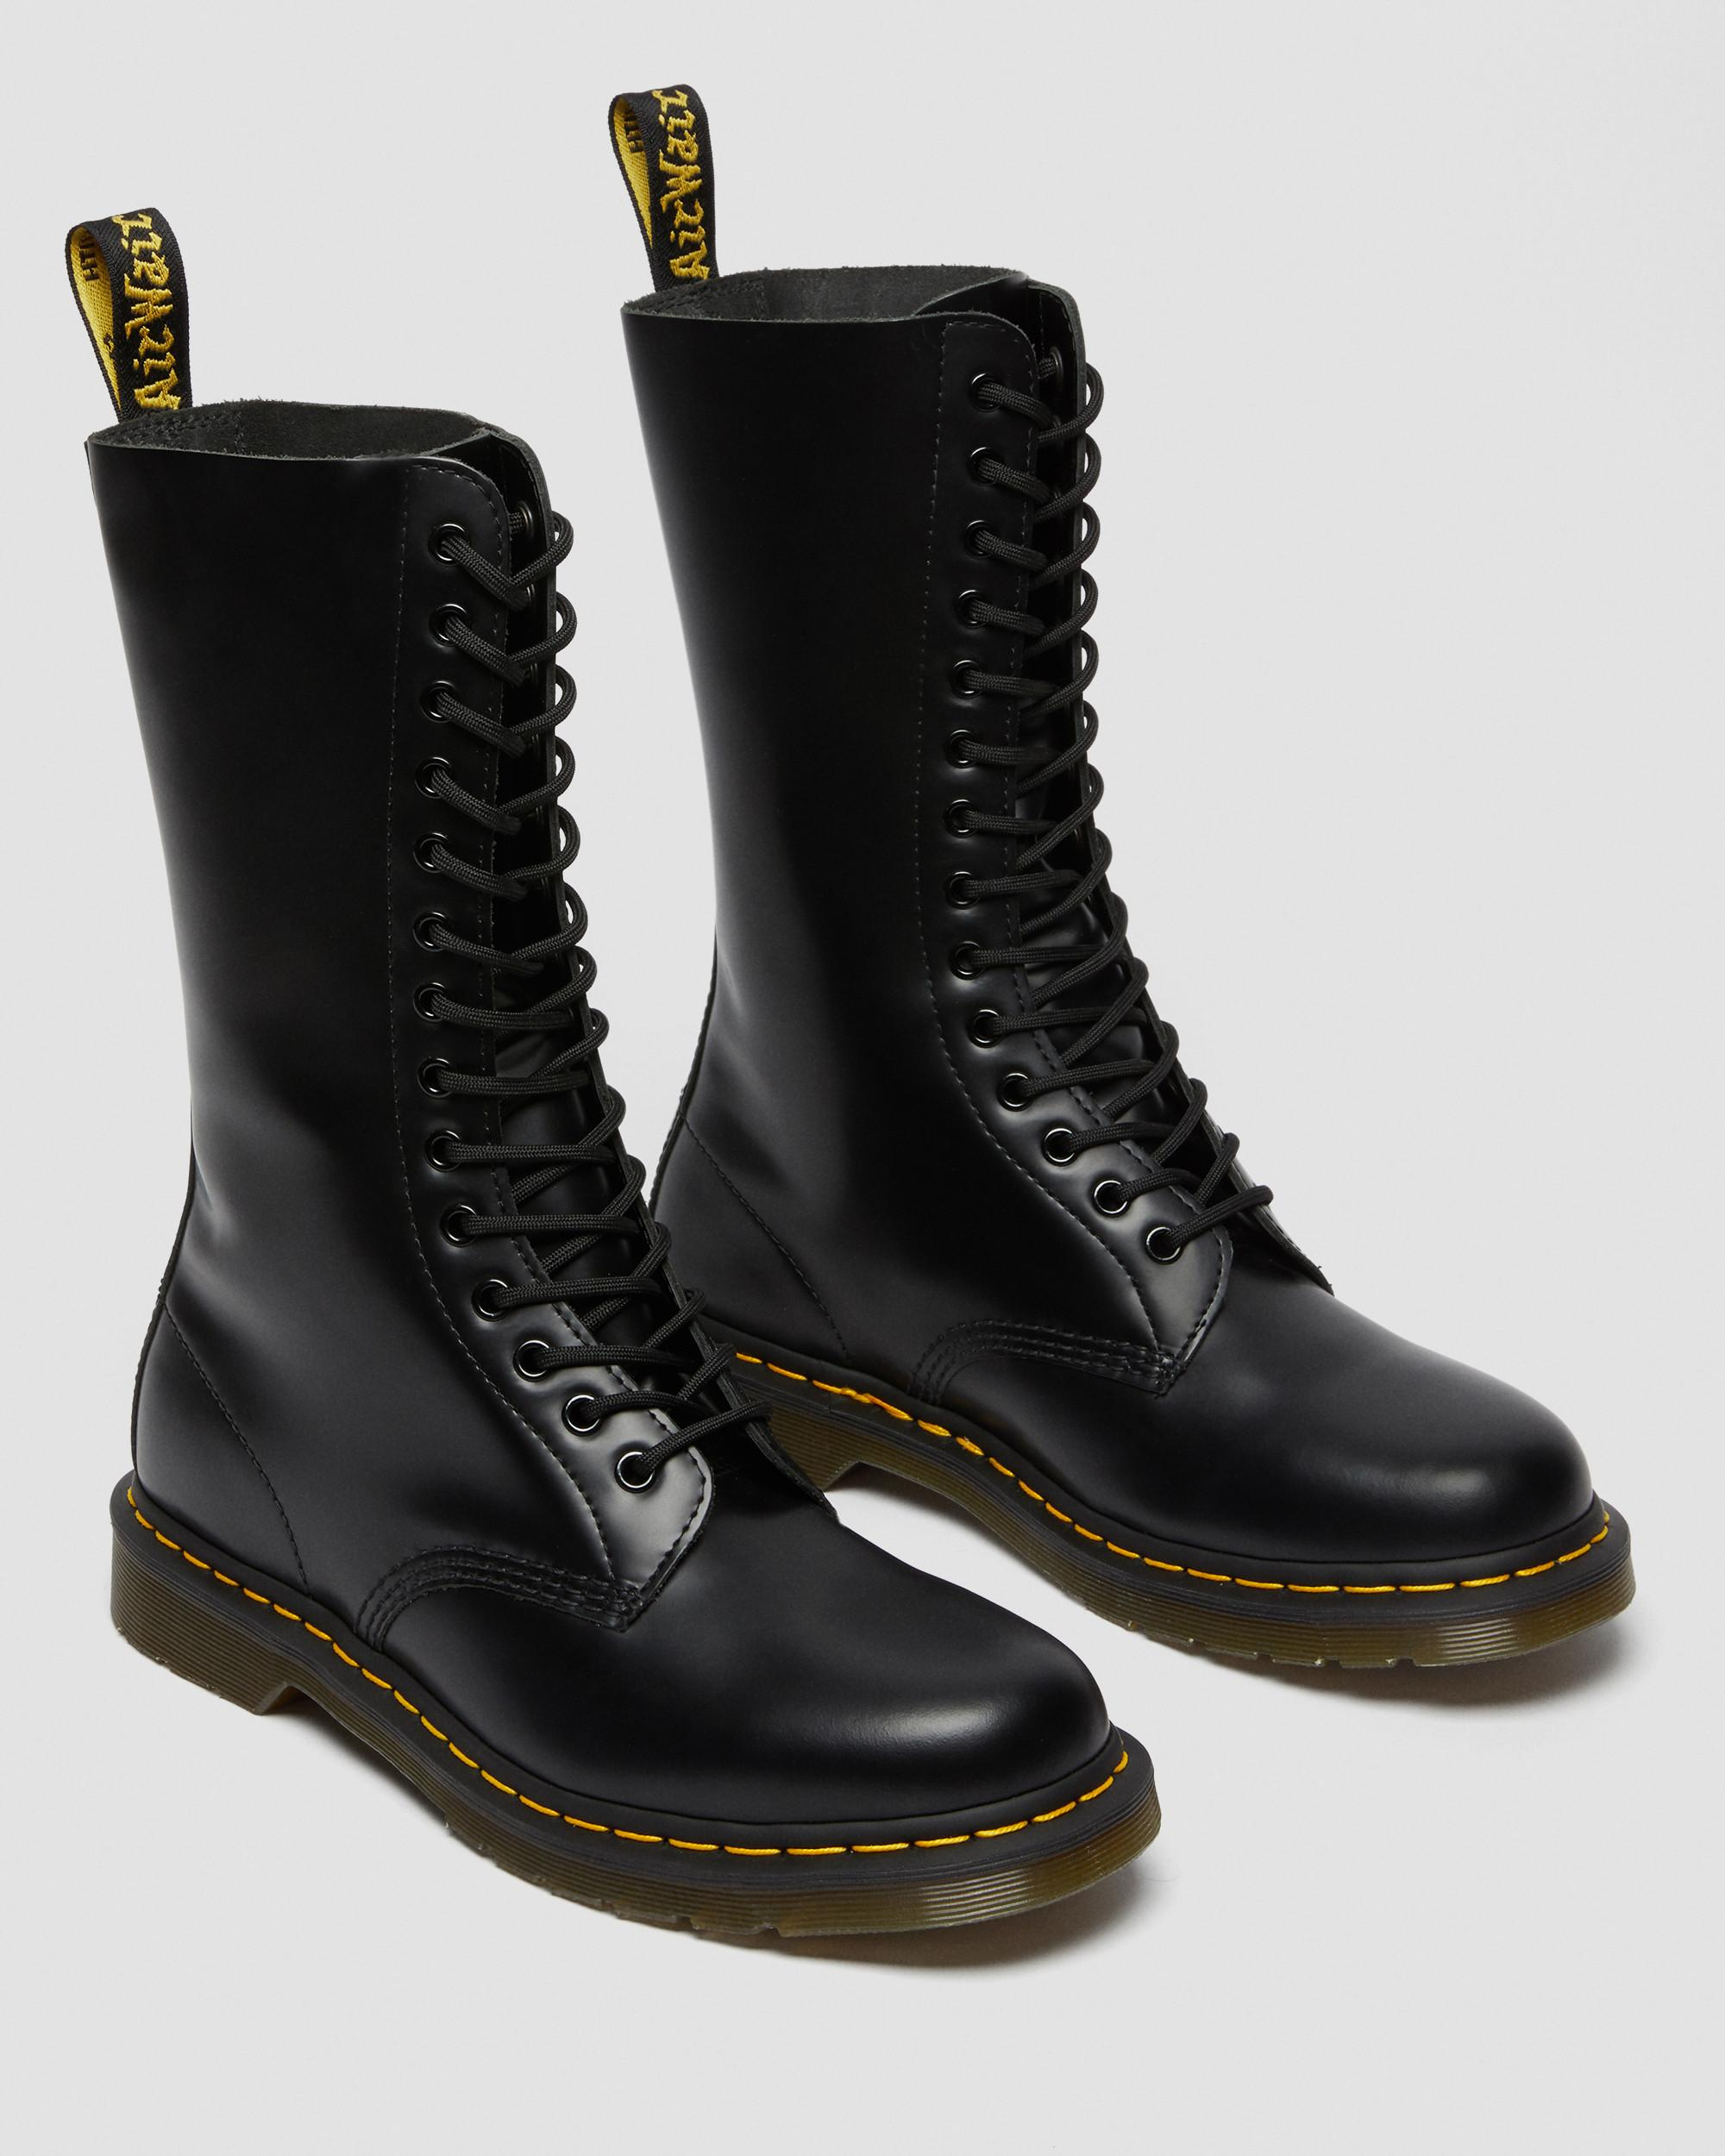 DR DOC MARTENS 1914 Smooth Boots Classic14 Eyelet Black 6 US